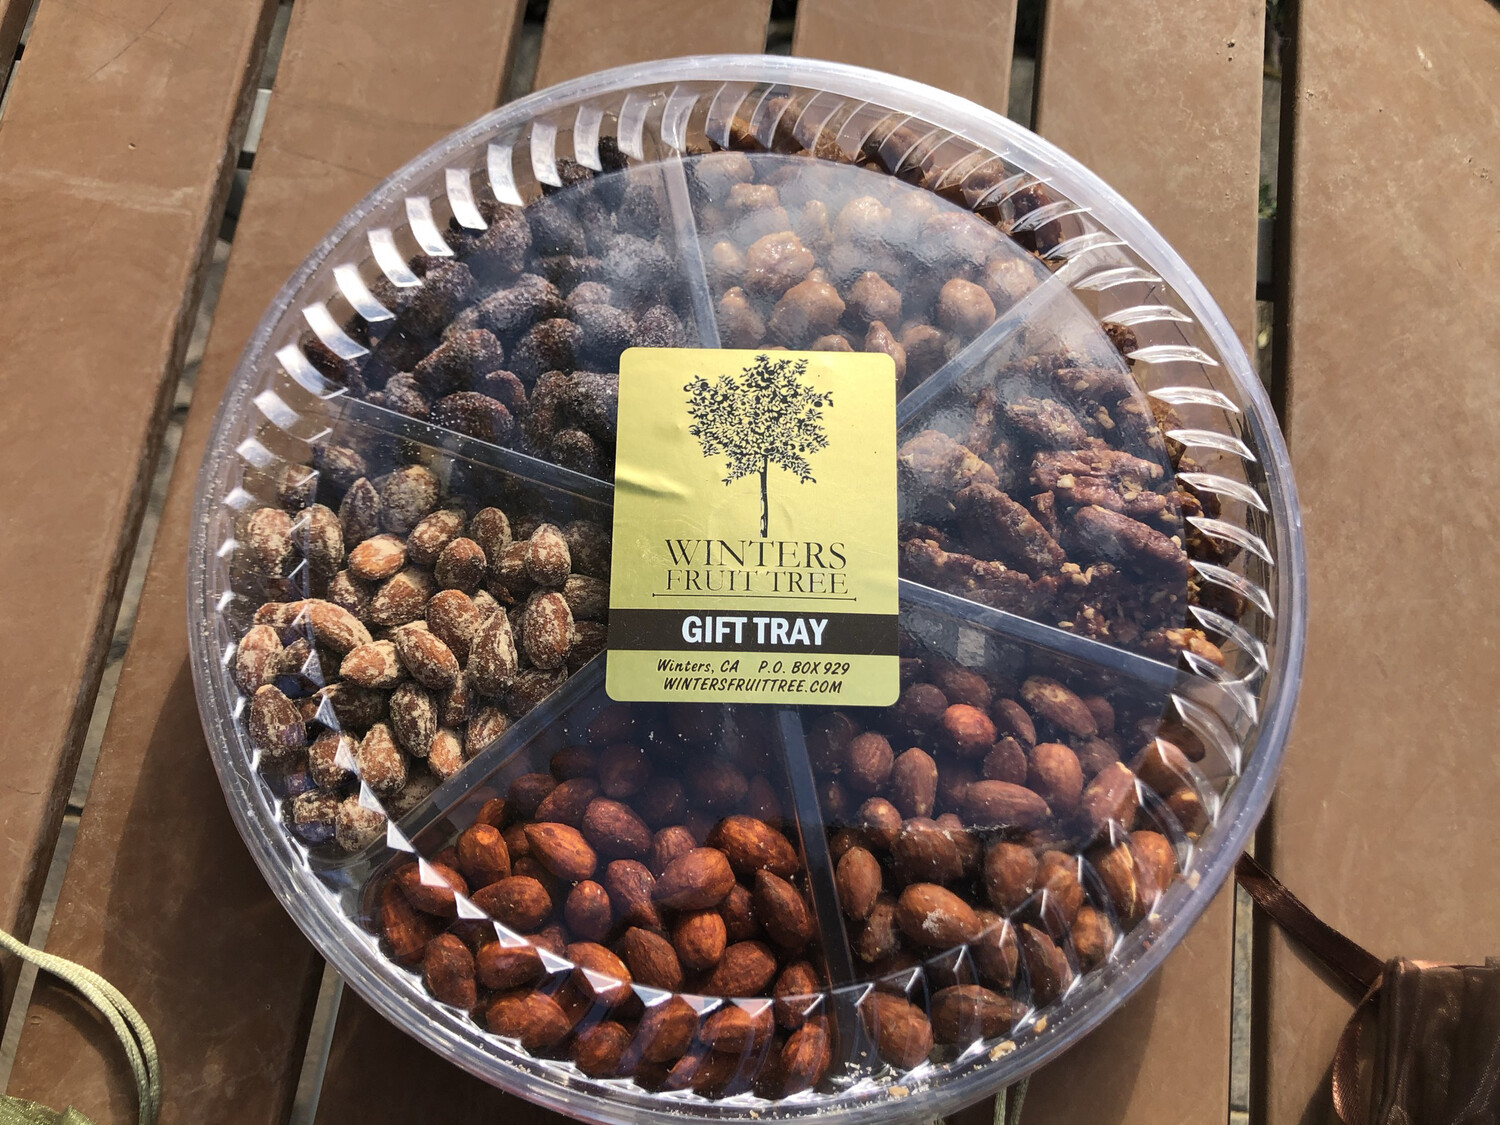 Nuts Large Mixed Gift Tray/ 22 Oz